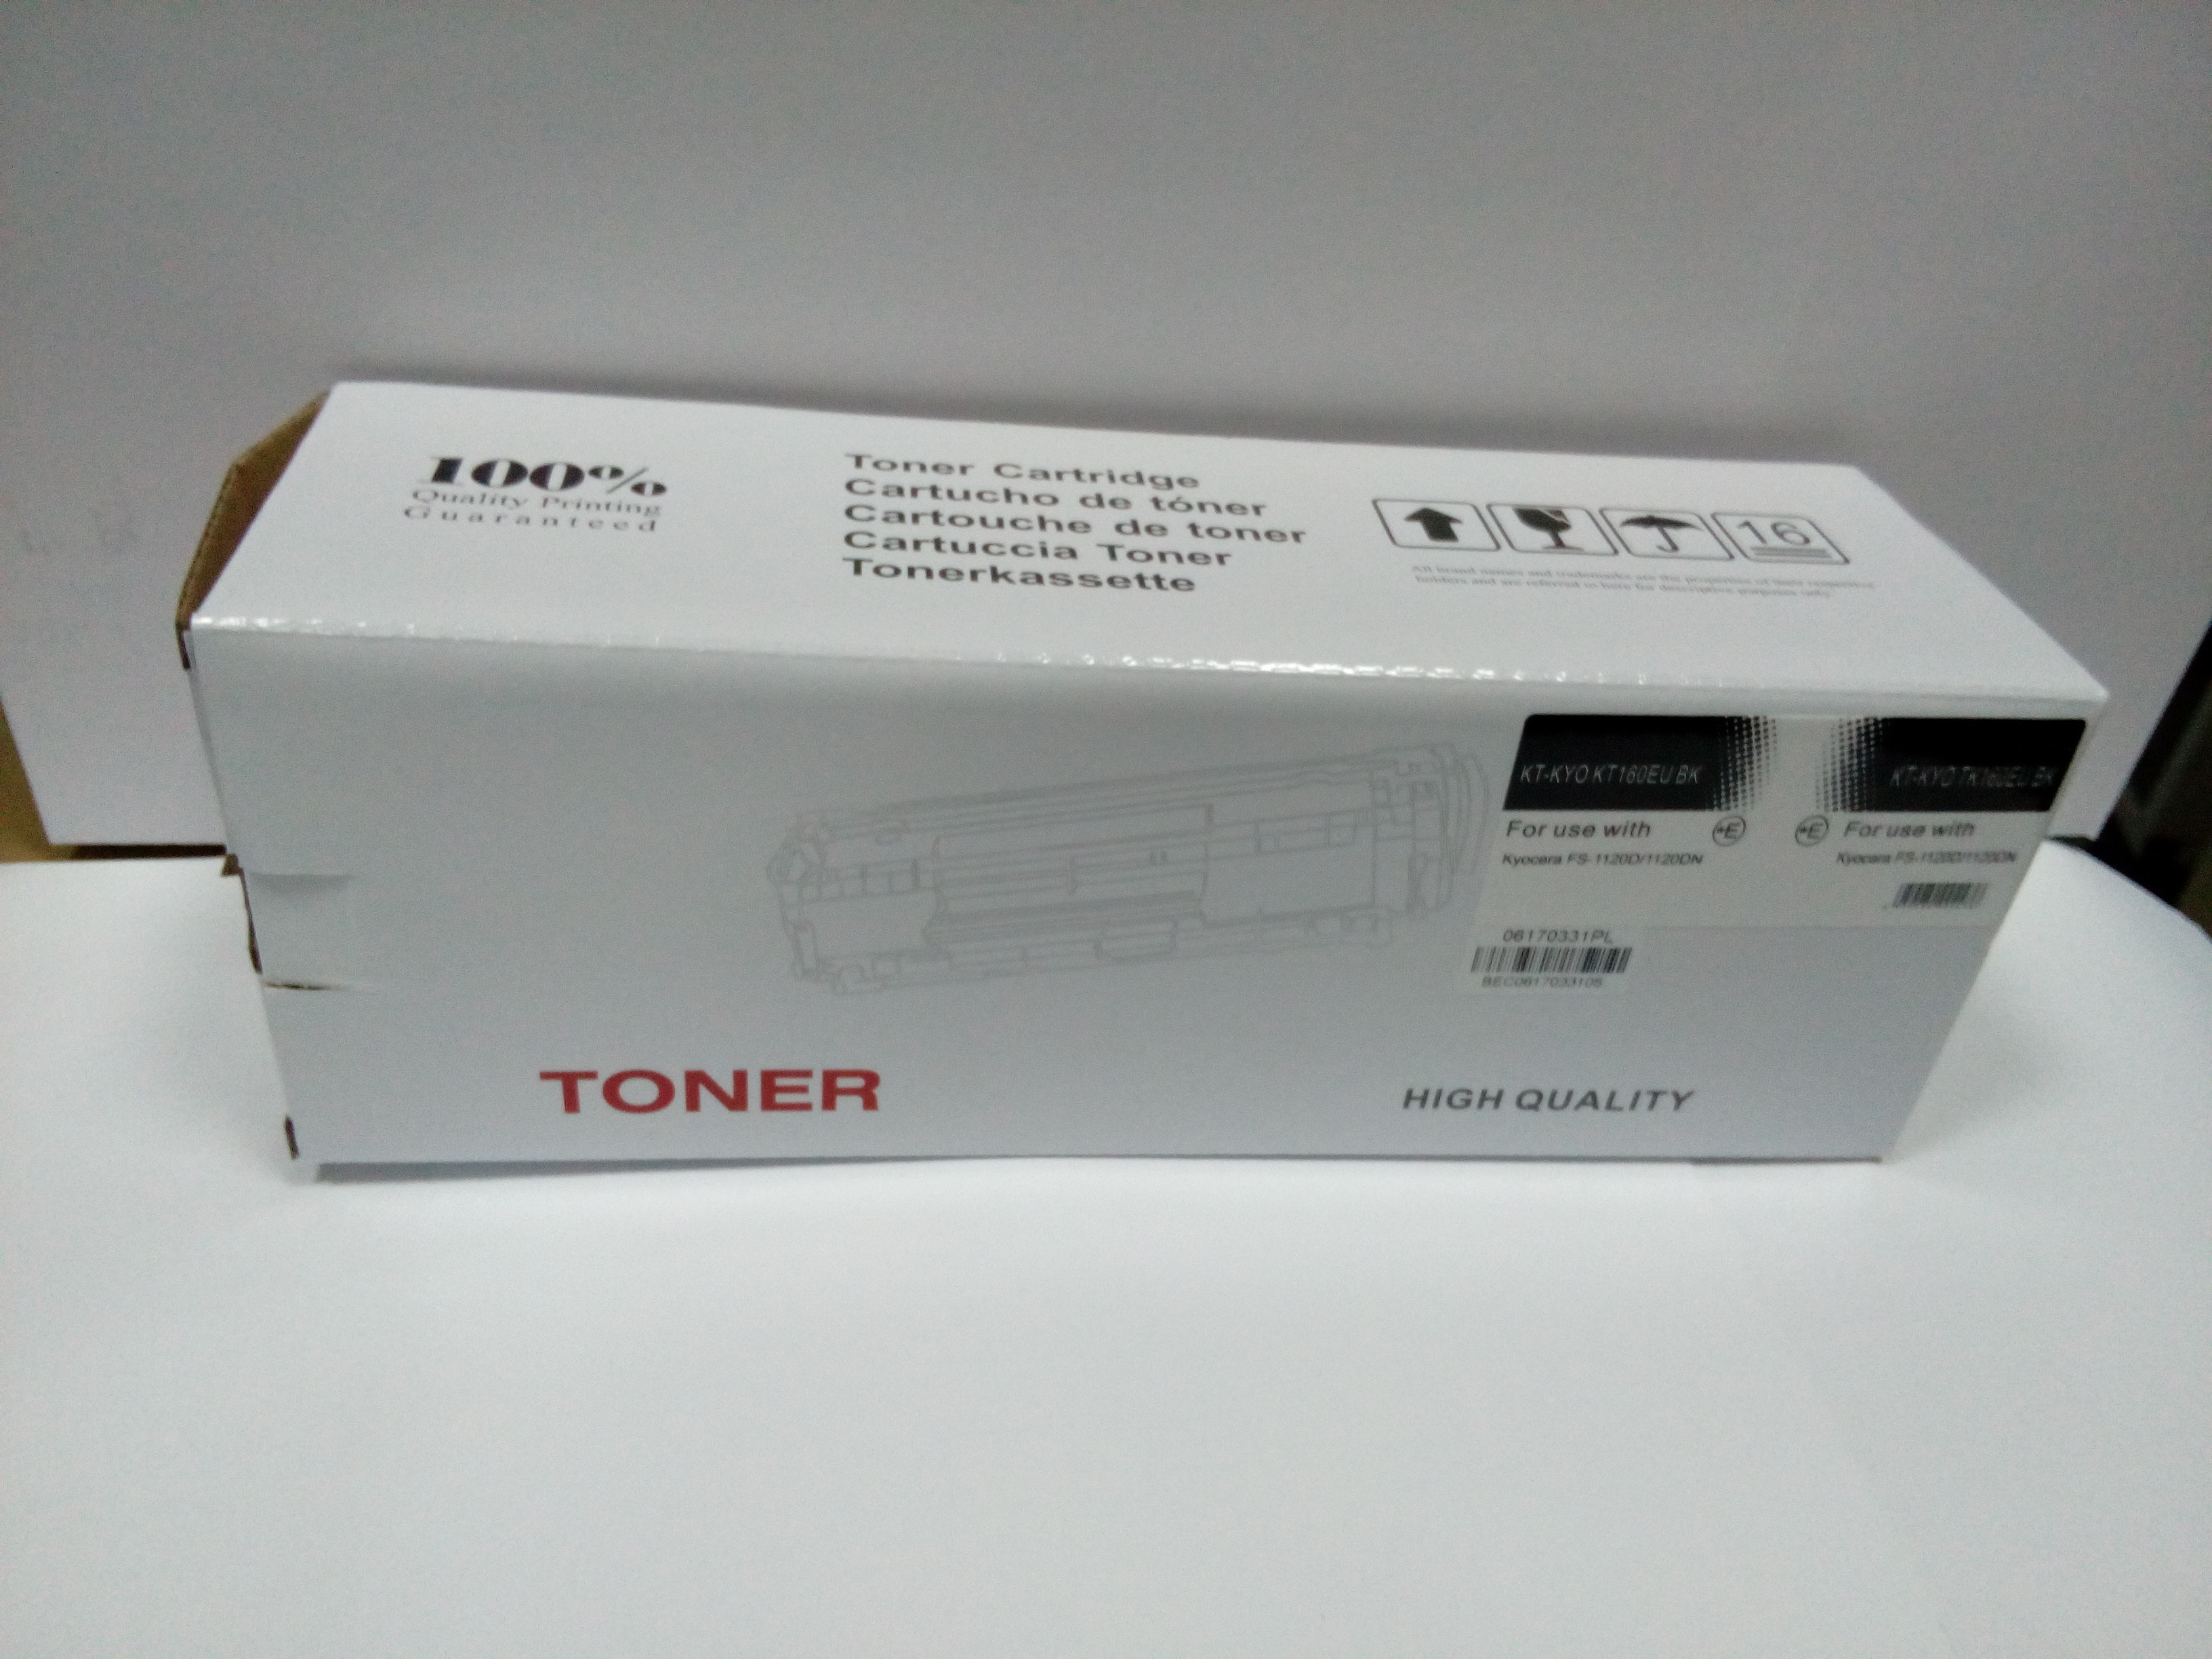 Kyocera Mita P2035 TK-162 cartridge - black 100% NEW